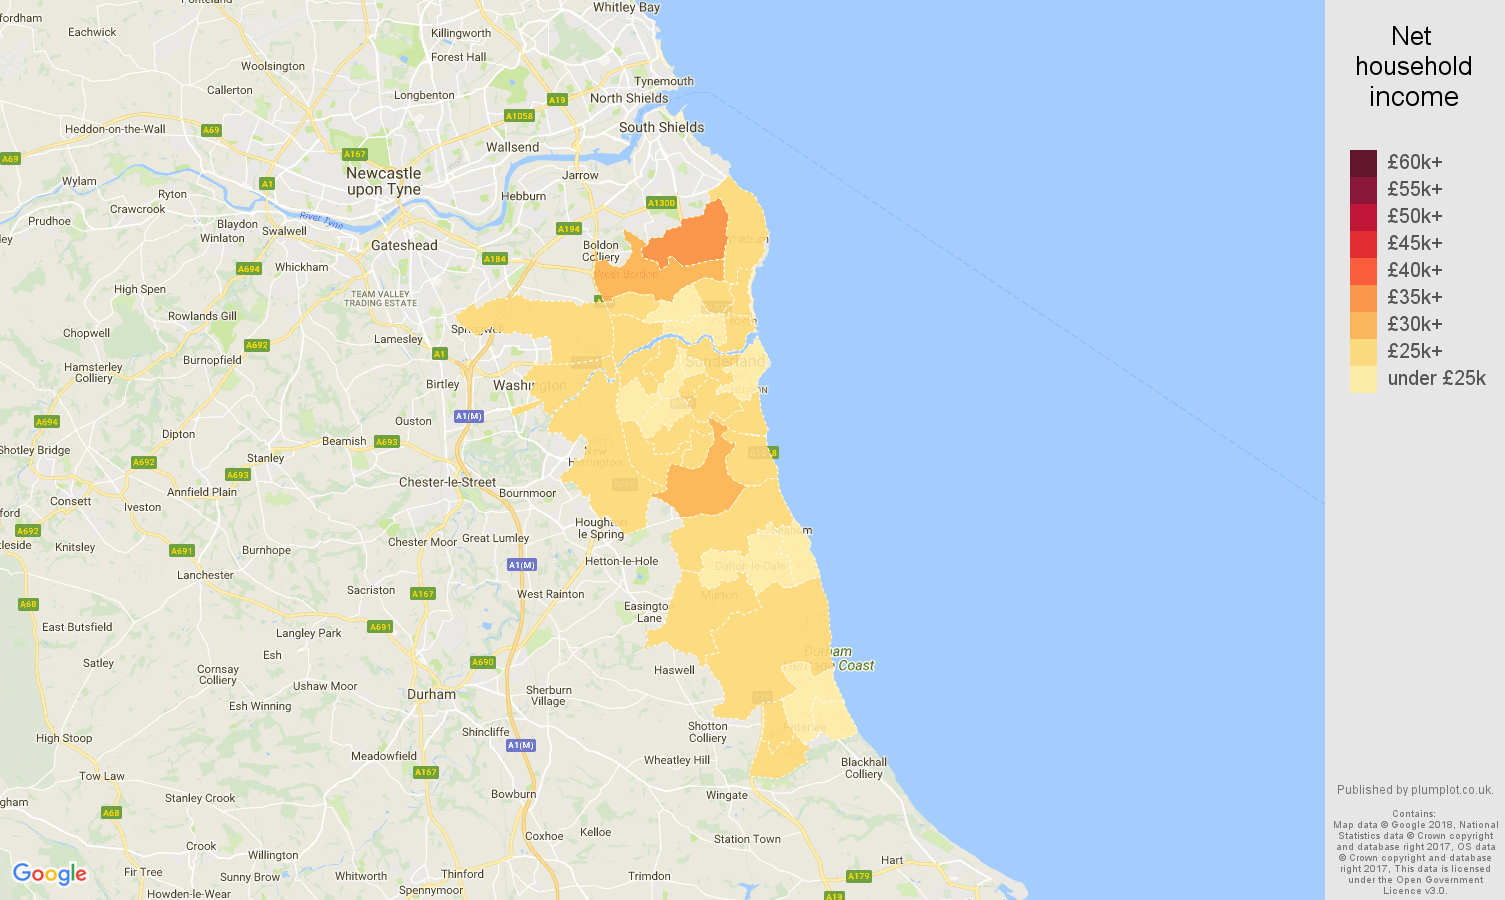 Sunderland net household income map